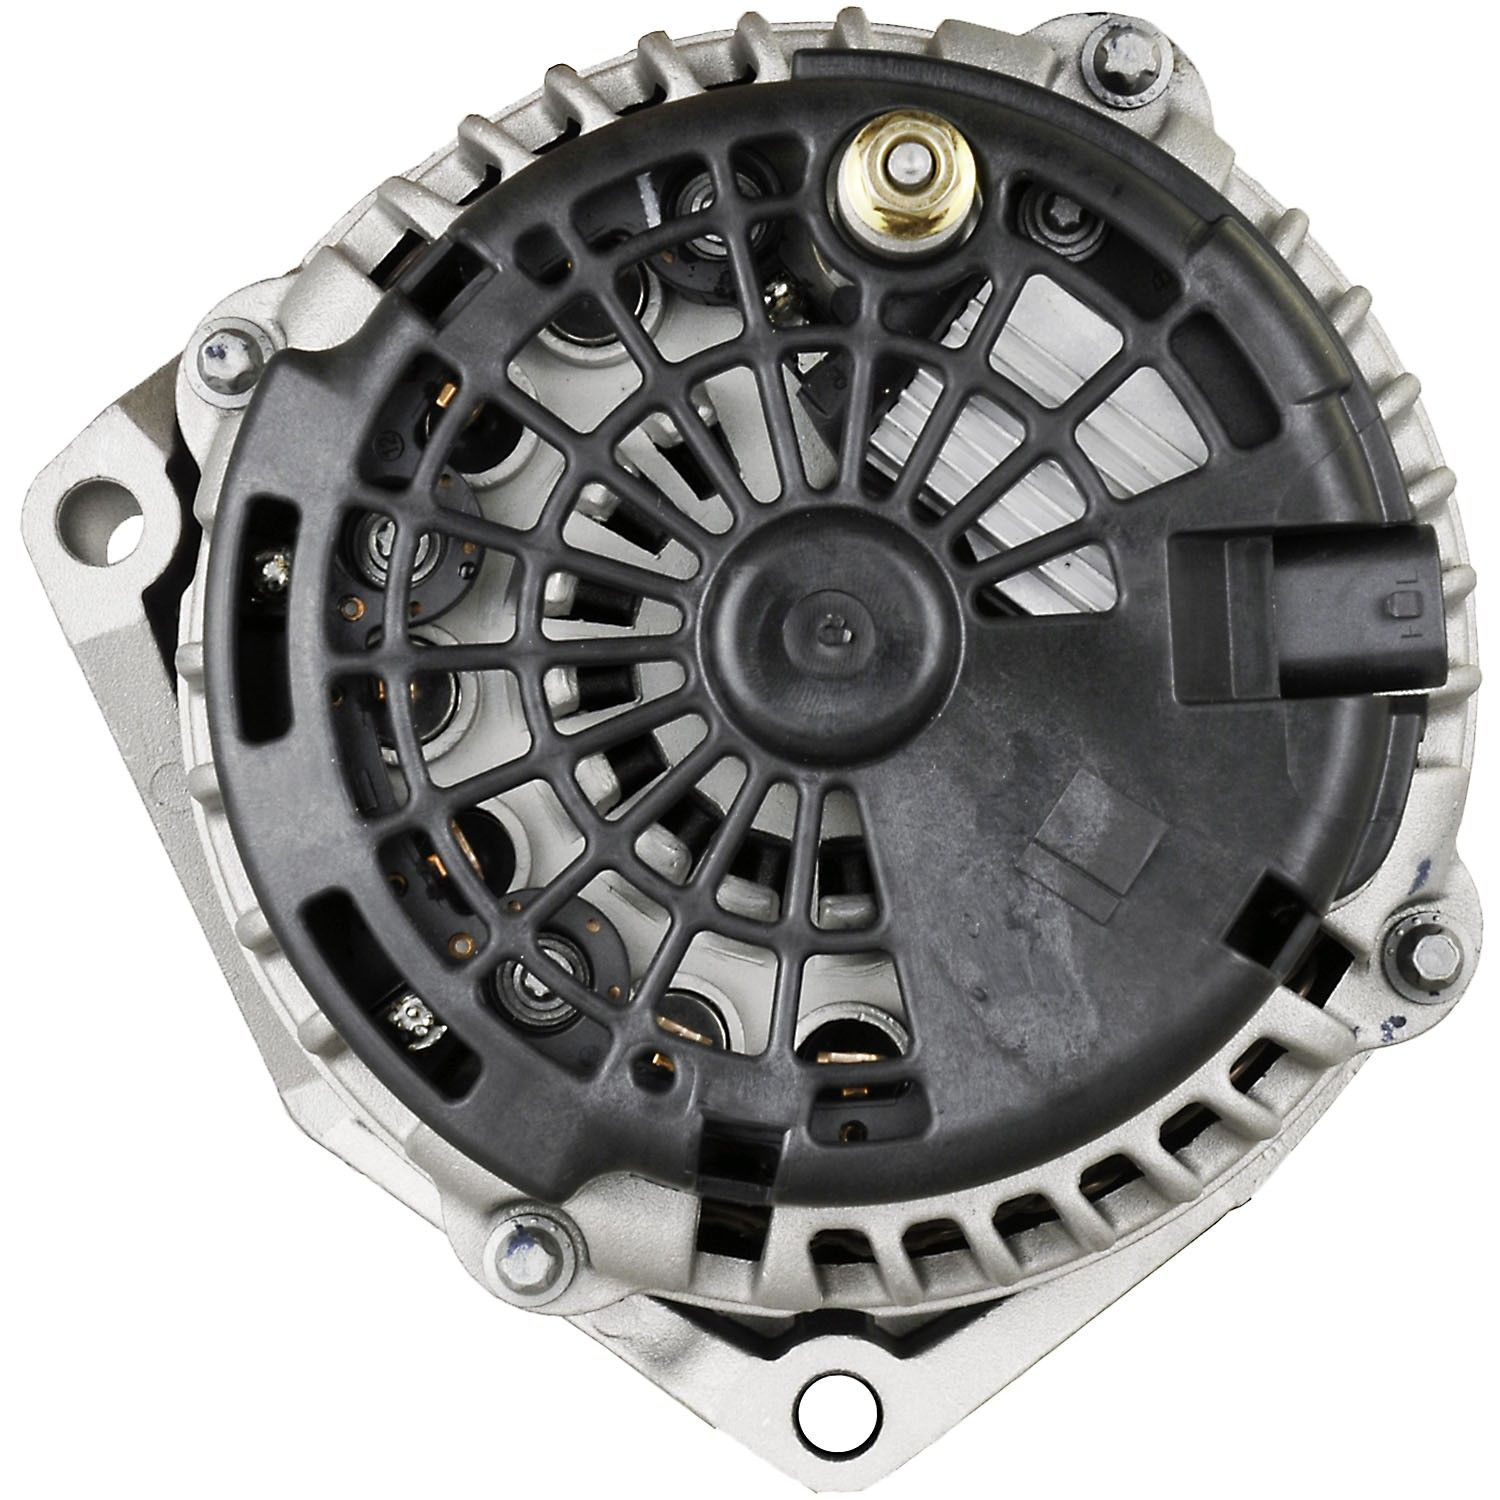 2007 Gmc Yukon Xl 1500 Alternator 8 Cyl 5 3l Denso 210 5382 145 Amp Delco Unit With 145mm 3 4 Dia Case